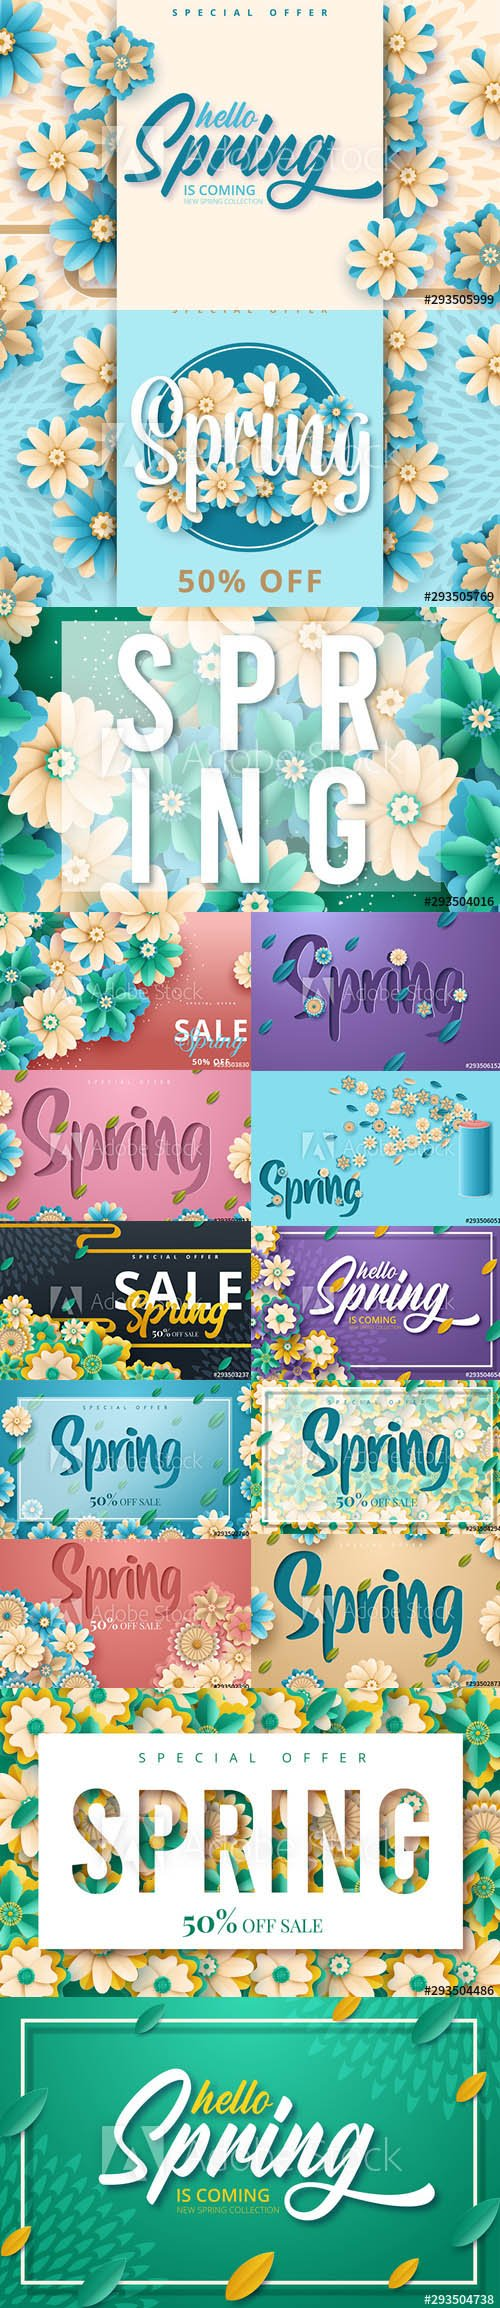 Spring Sale Backgrounds with Flowers vol3